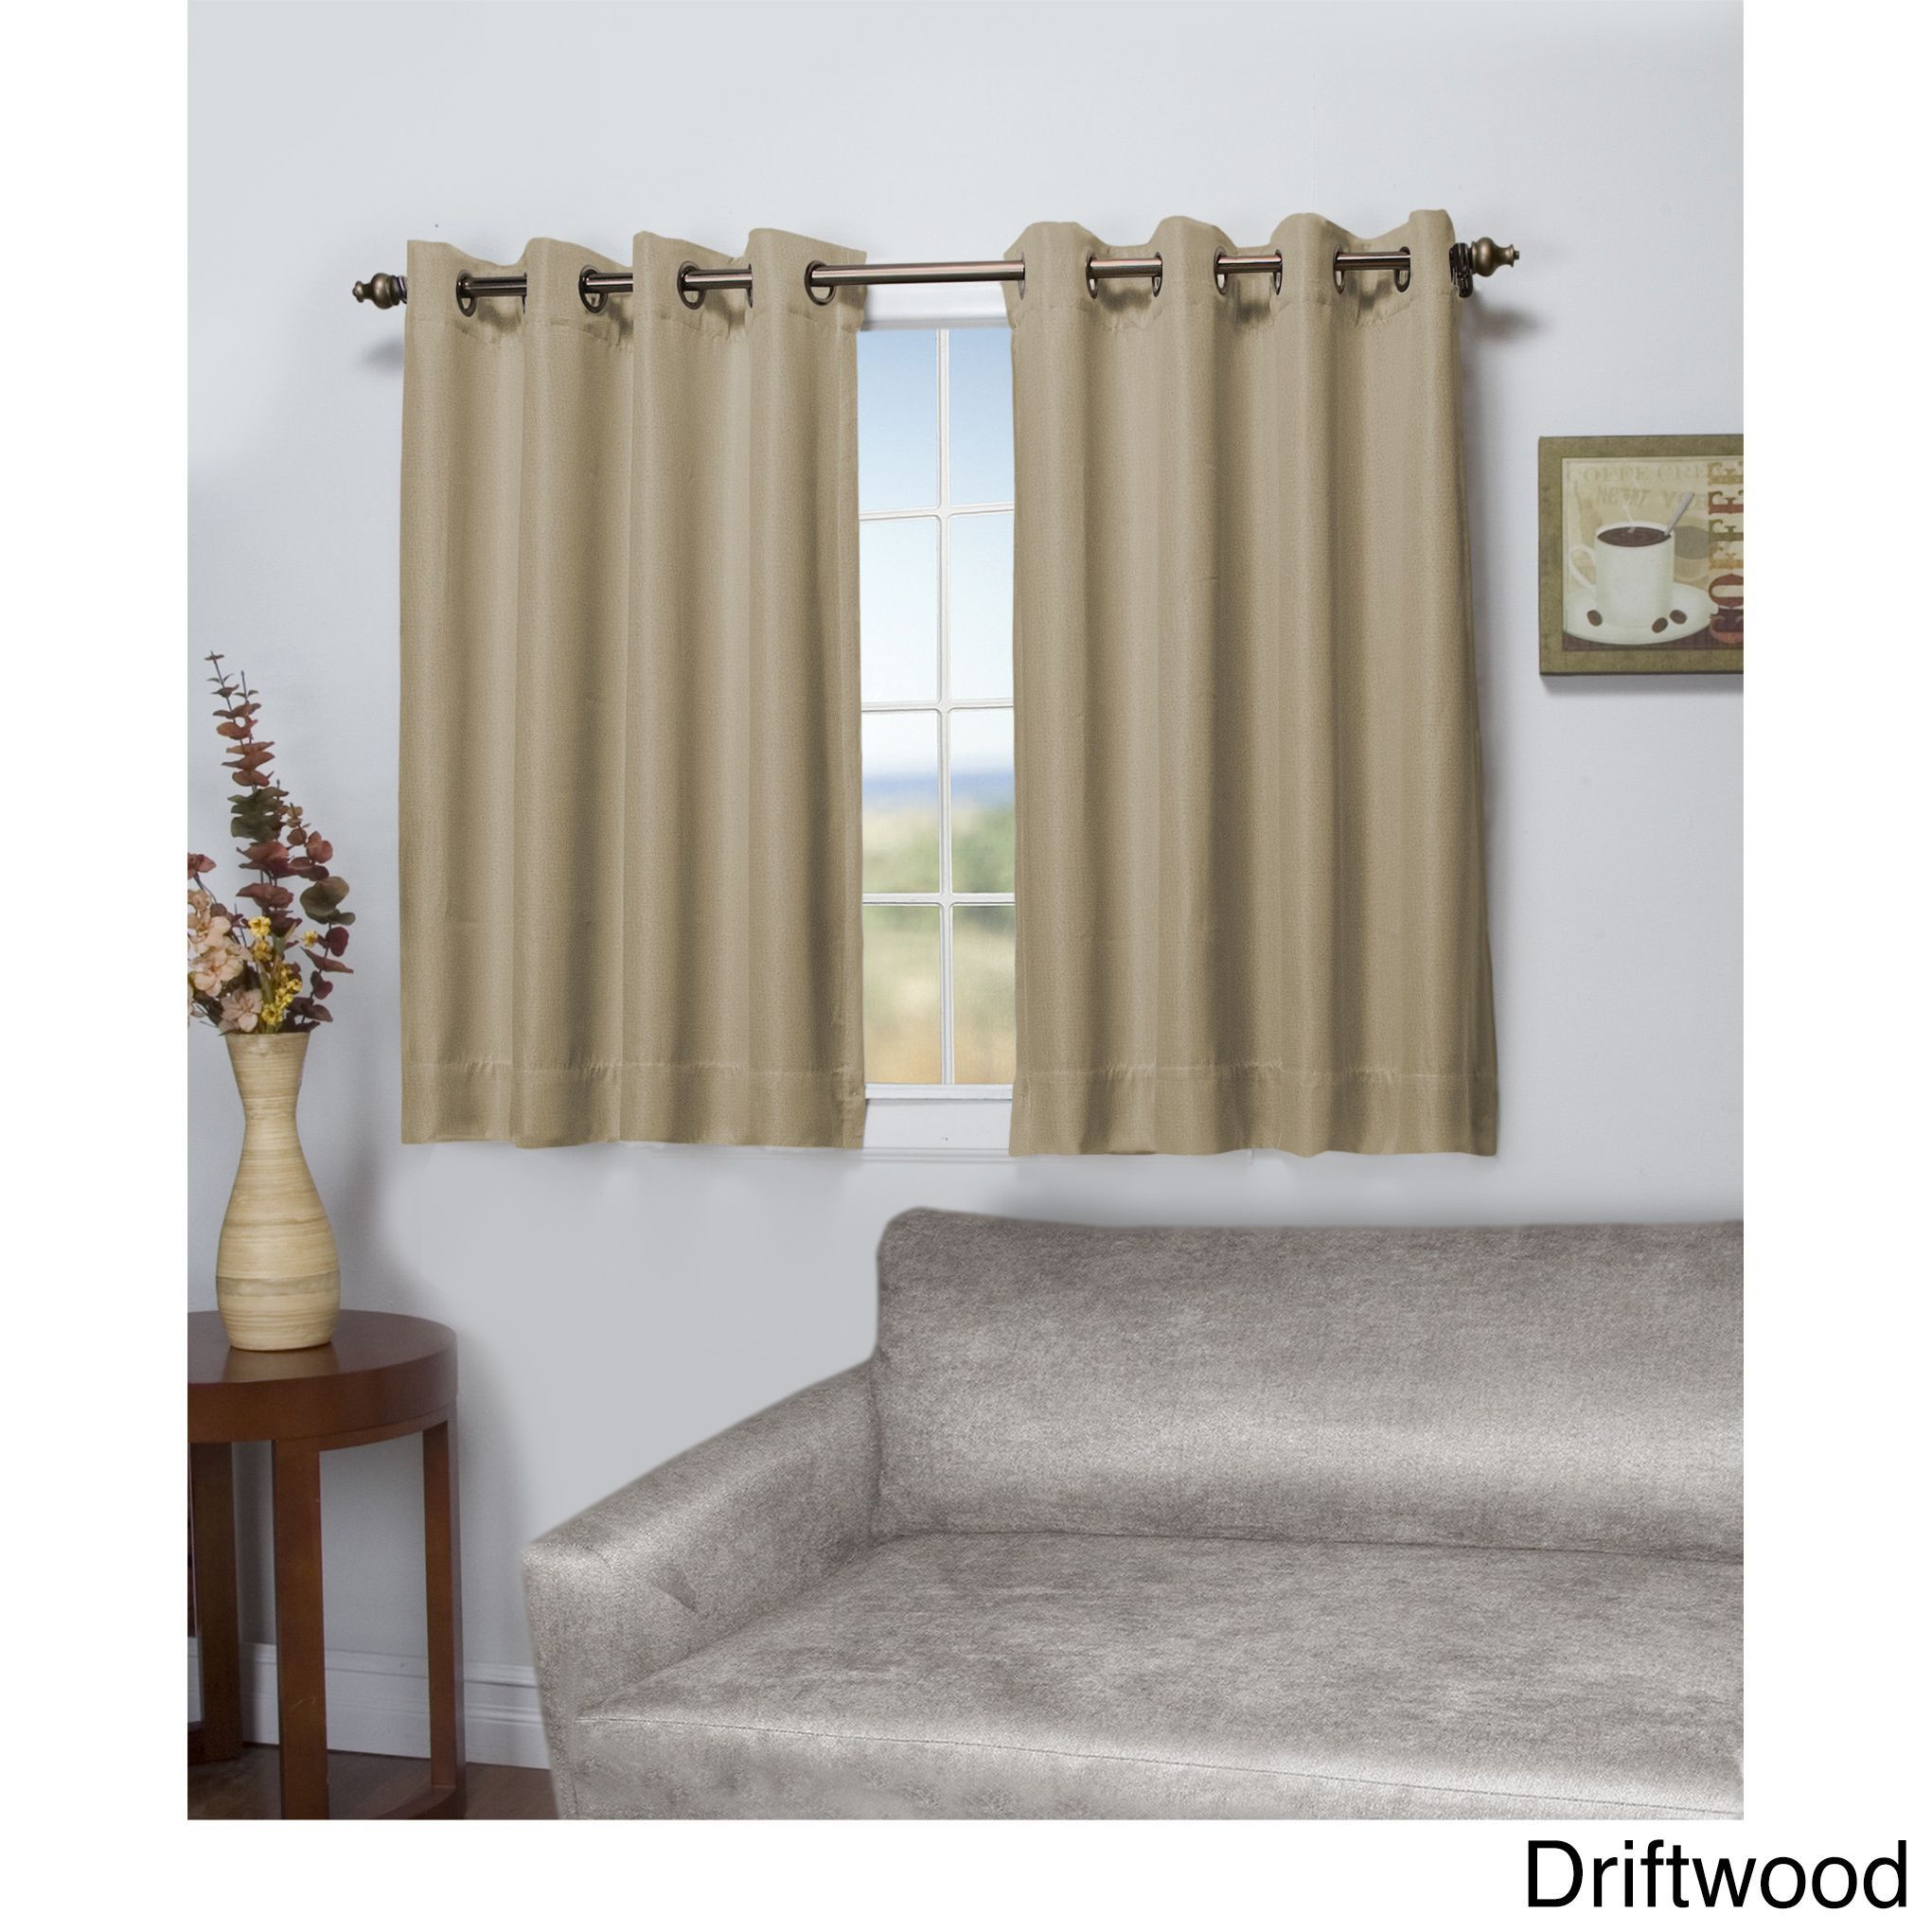 length inch target panels room heat beautiful curtain trendy drapes shower walmart resistant short darkening valances eclipse mesmerizing curtains and blackout bronze